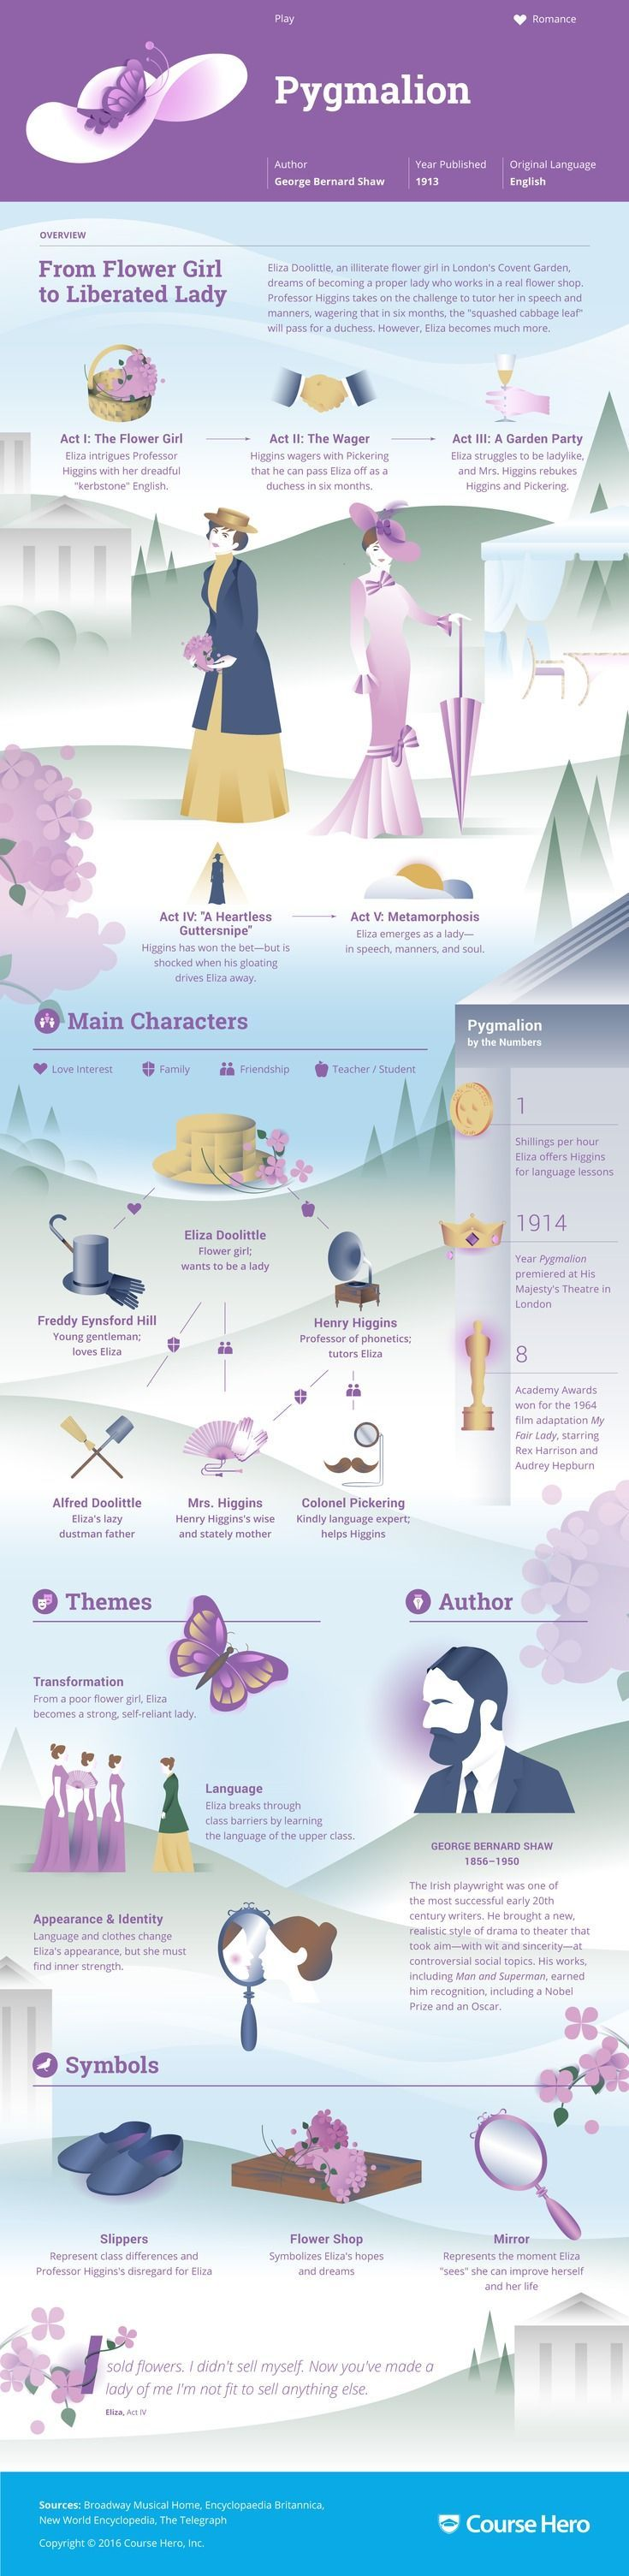 best images about writing stories of decision making on this coursehero infographic on pyg on is both visually stunning and